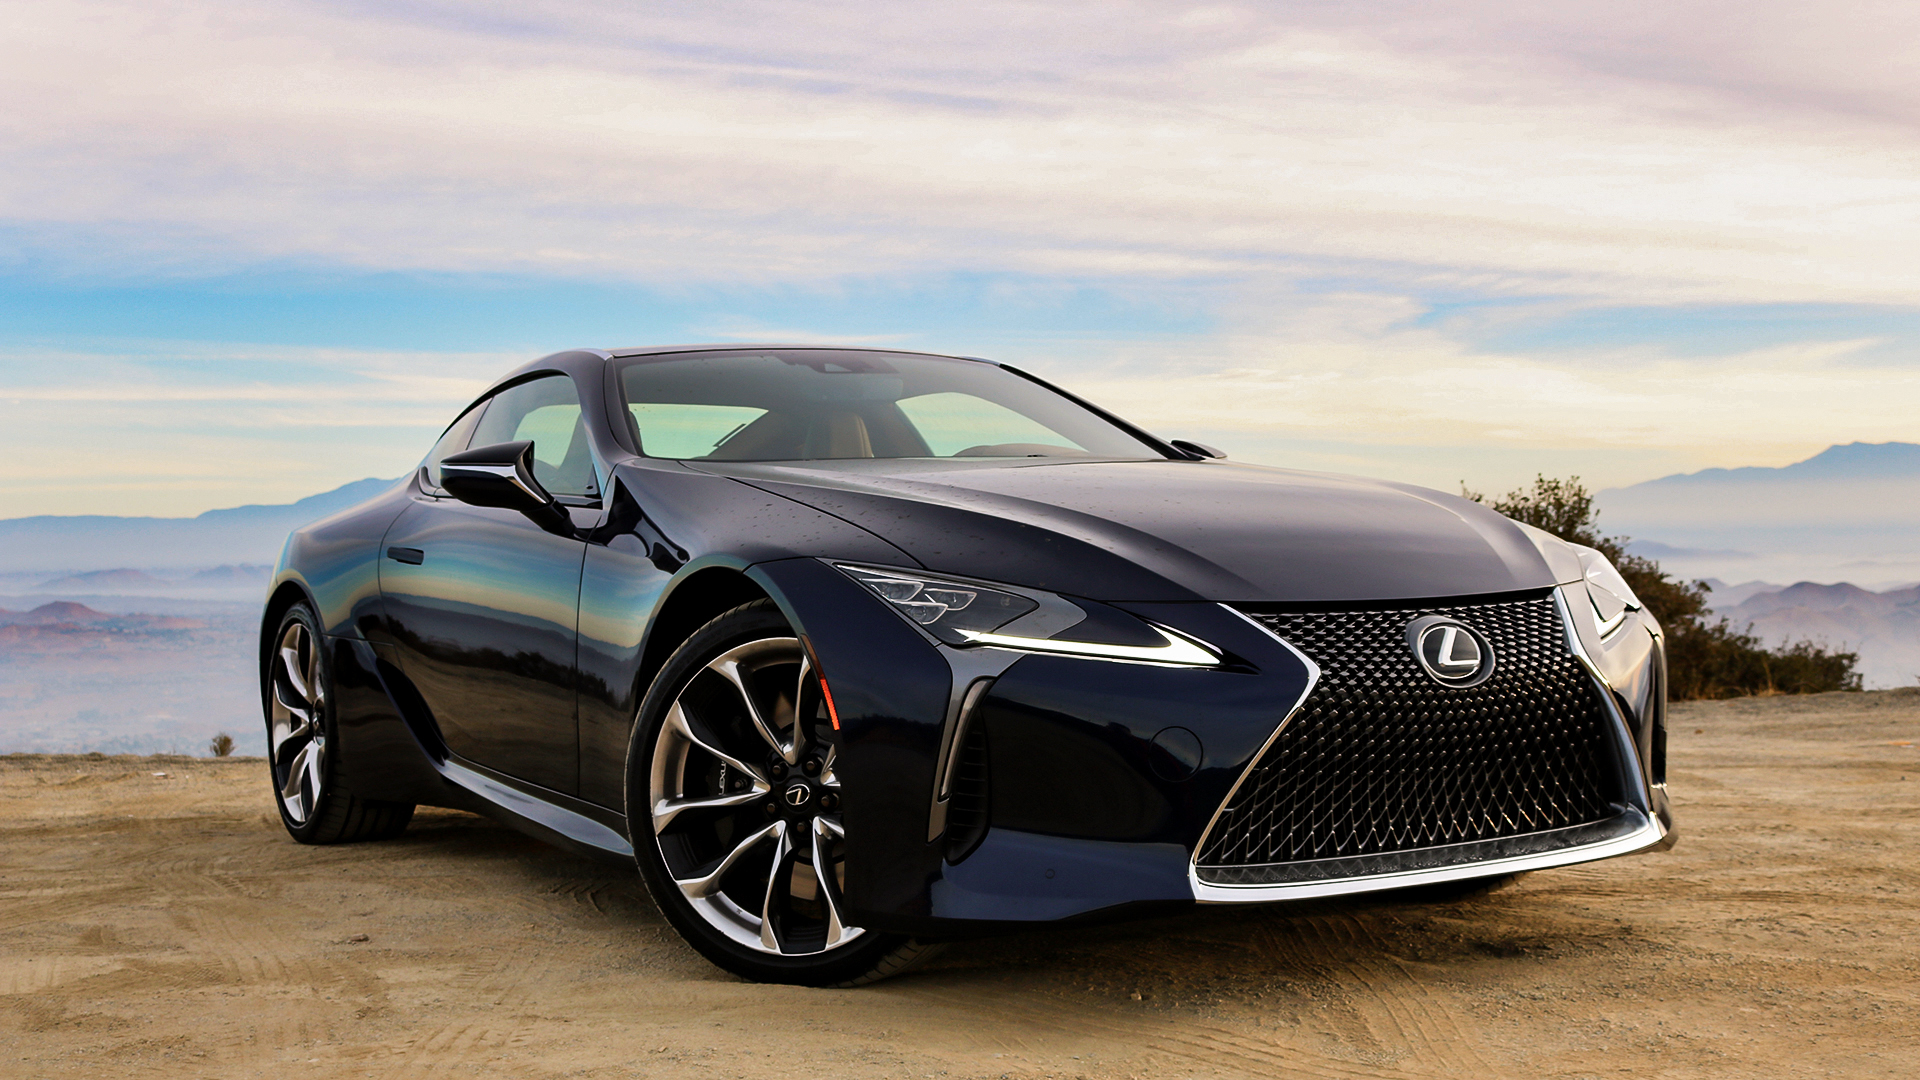 Lexus Lc 500 Interior >> 2018 Lexus LC 500 Review: A Sci-Fi Stunner for the Luxurious Long Haul - The Drive